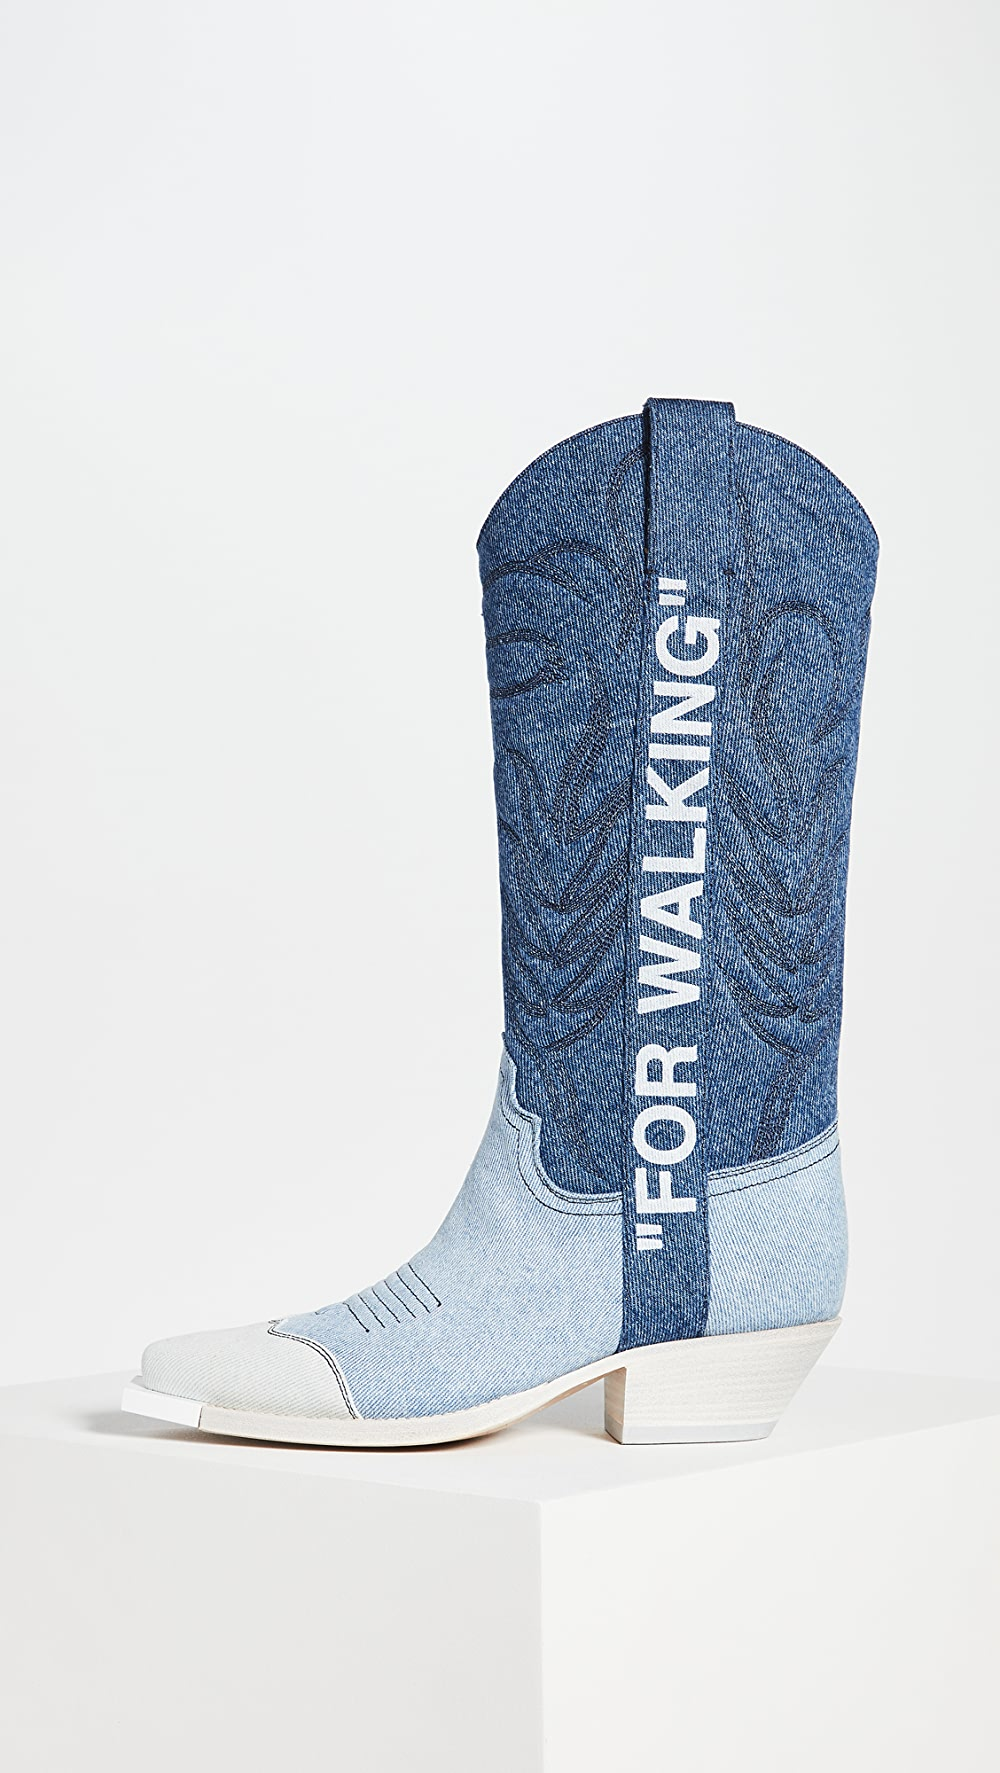 2019 New Style Off-white - Denim Cowboy Boots In Pain